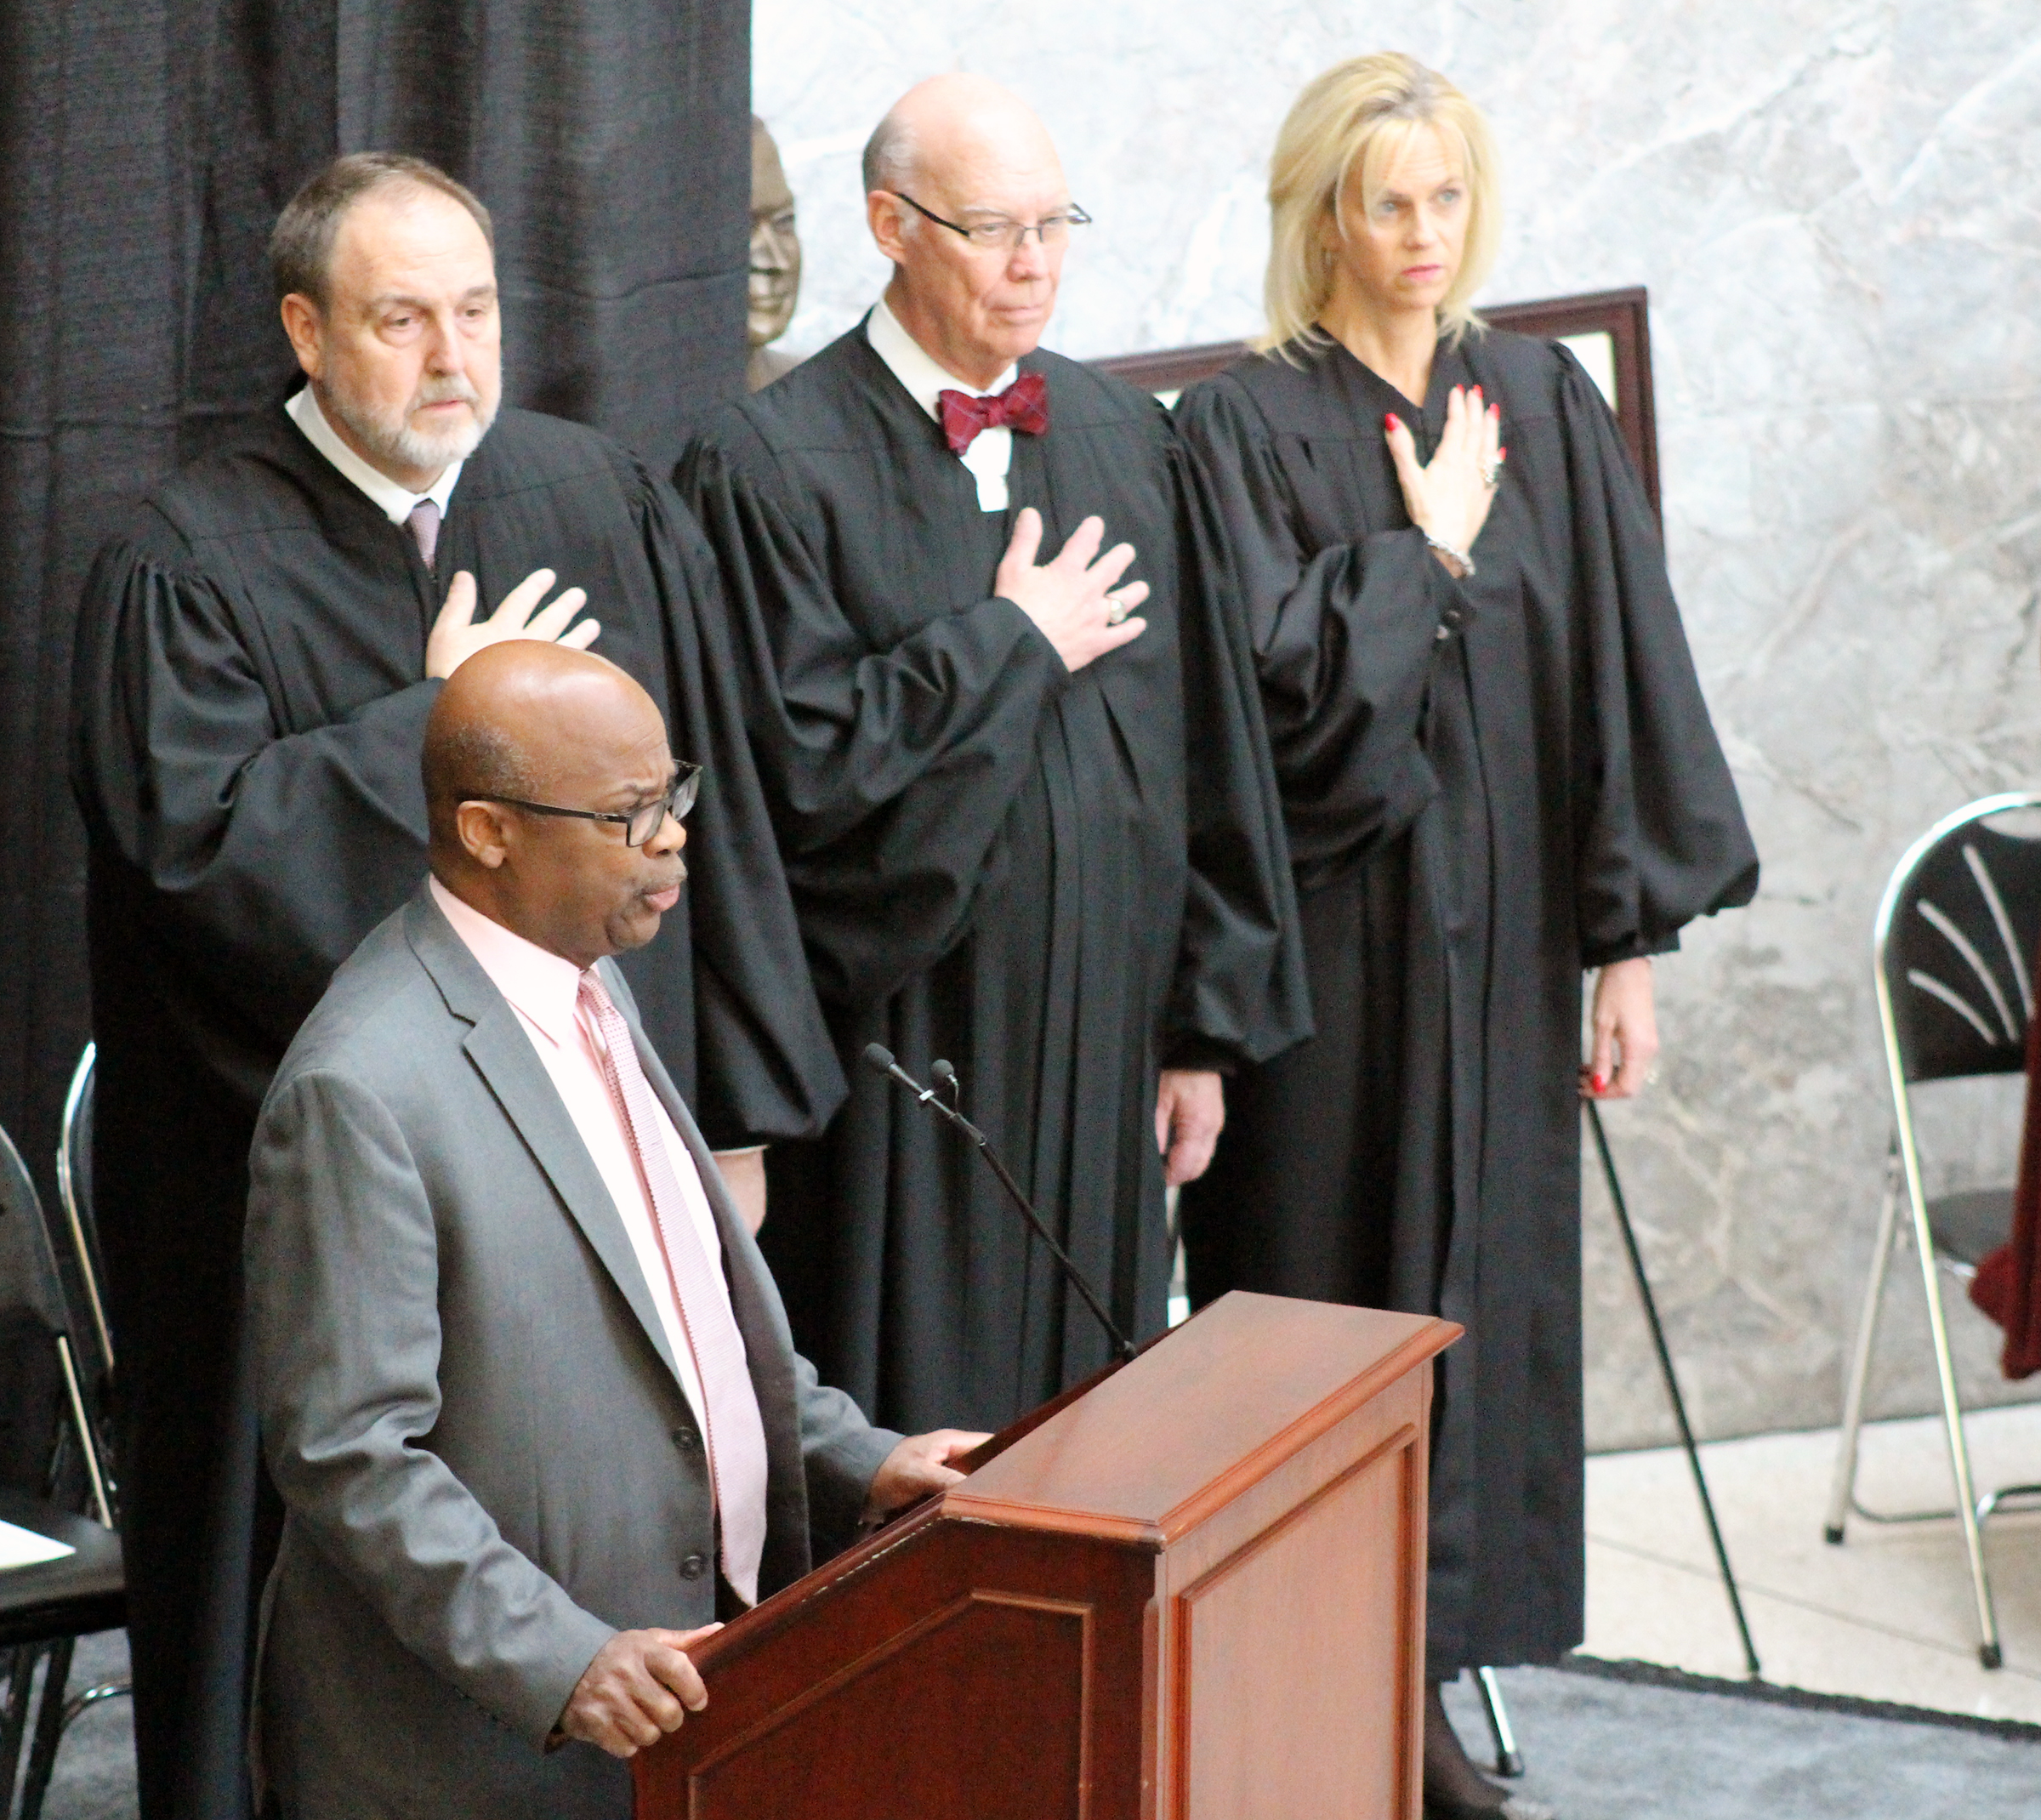 """Franklin Thompson led the singing of """"The Star-Spangled Banner"""" at Brian C. Buescher's investiture ceremony at the Hruska Federal Courthouse on Friday, Nov. 15, 2019. (Photo by Scott Stewart)"""